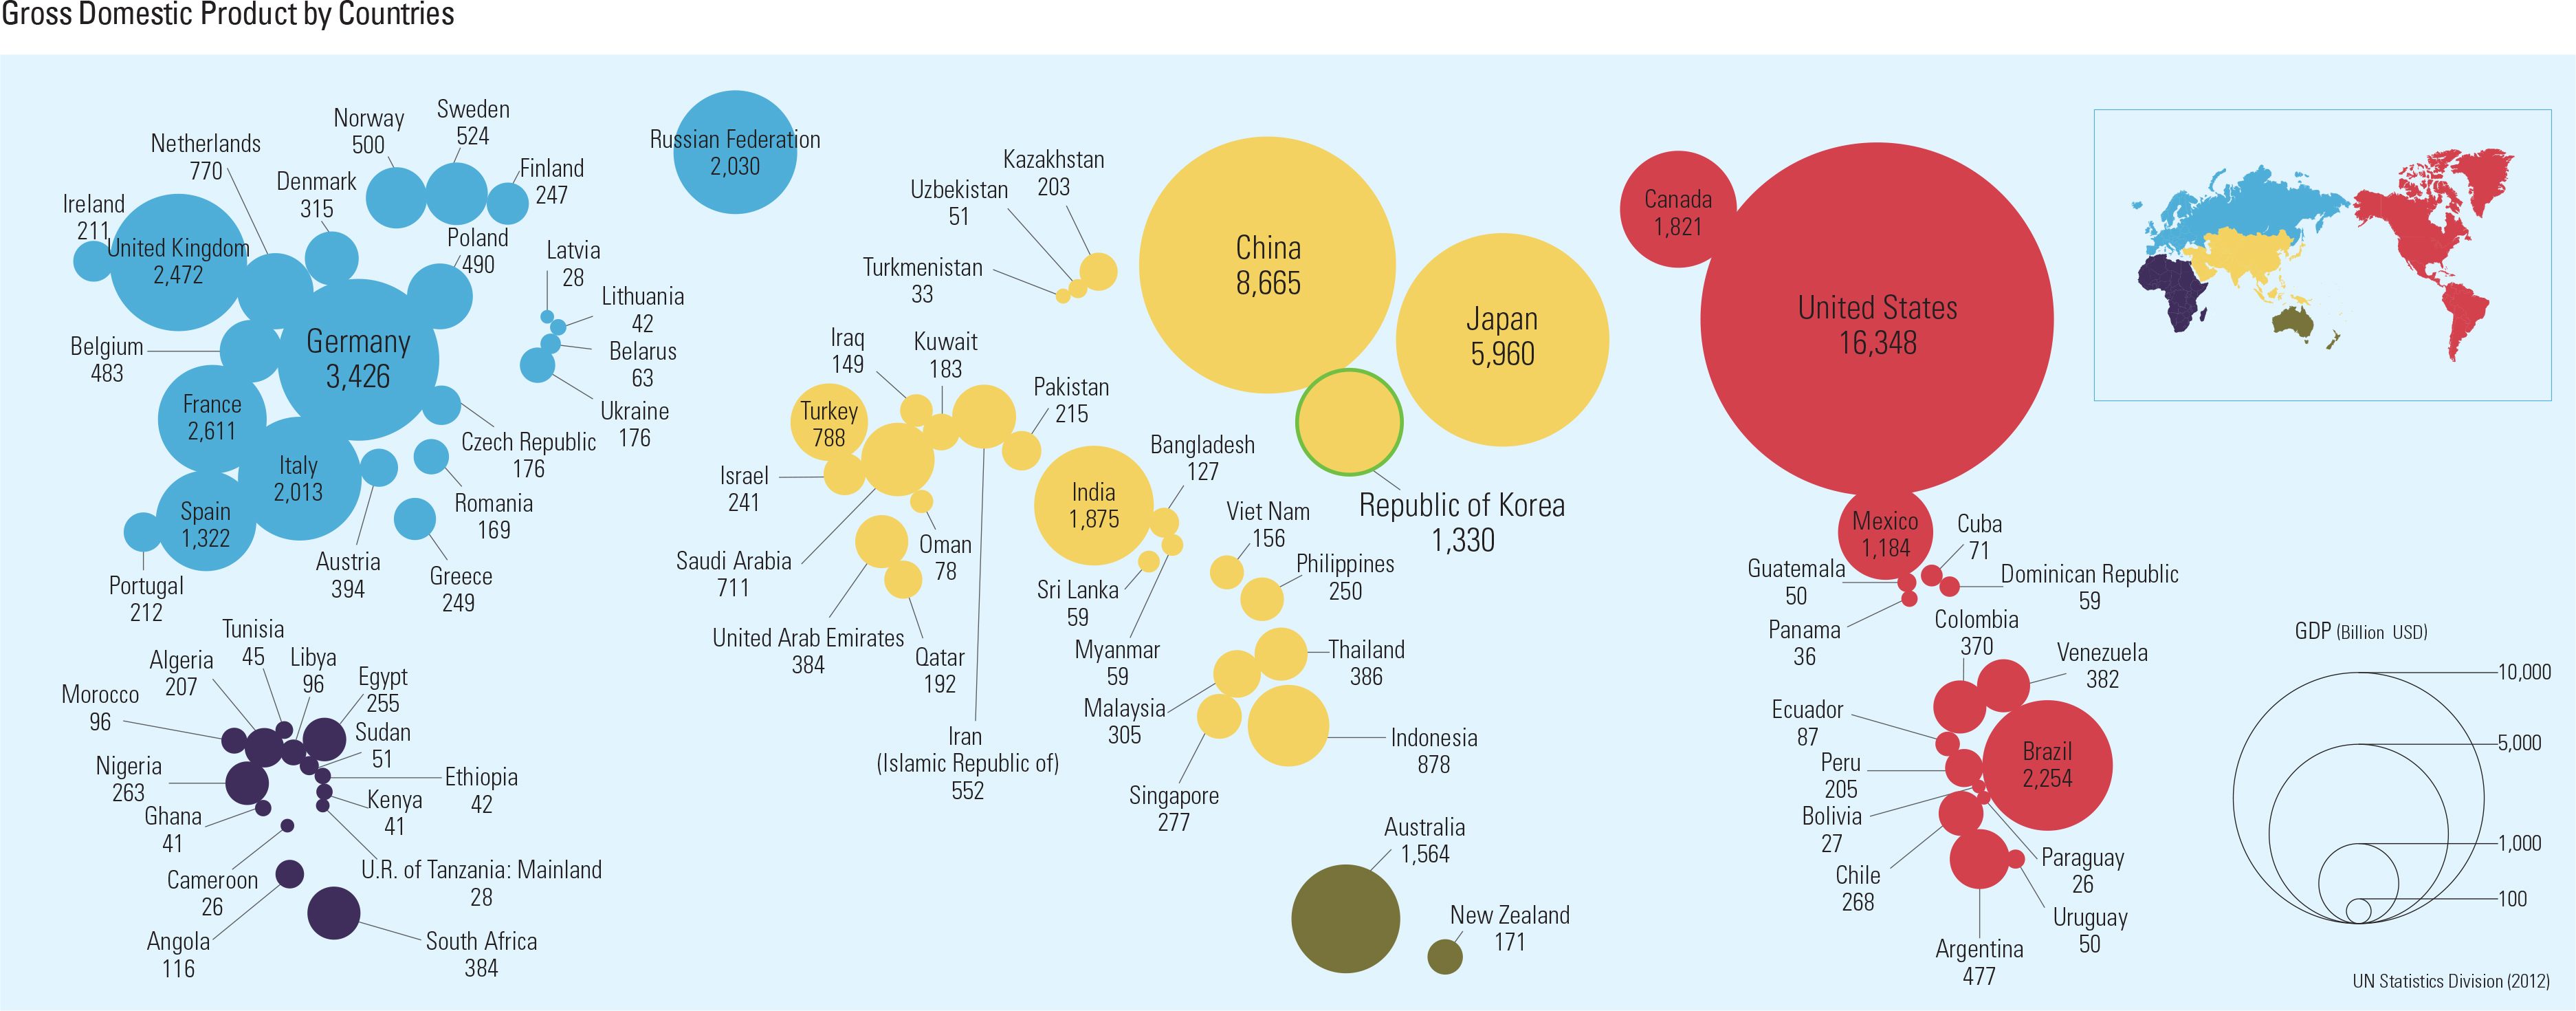 """Gross Domestic Product by Countries<p class=""""oz_zoom"""" zimg=""""http://imagedata.cafe24.com/us_1/us1_9-3_2.jpg""""><span style=""""font-family:Nanum Myeongjo;""""><span style=""""font-size:18px;""""><span class=""""label label-danger"""">UPDATE DATA</span></span></p>"""